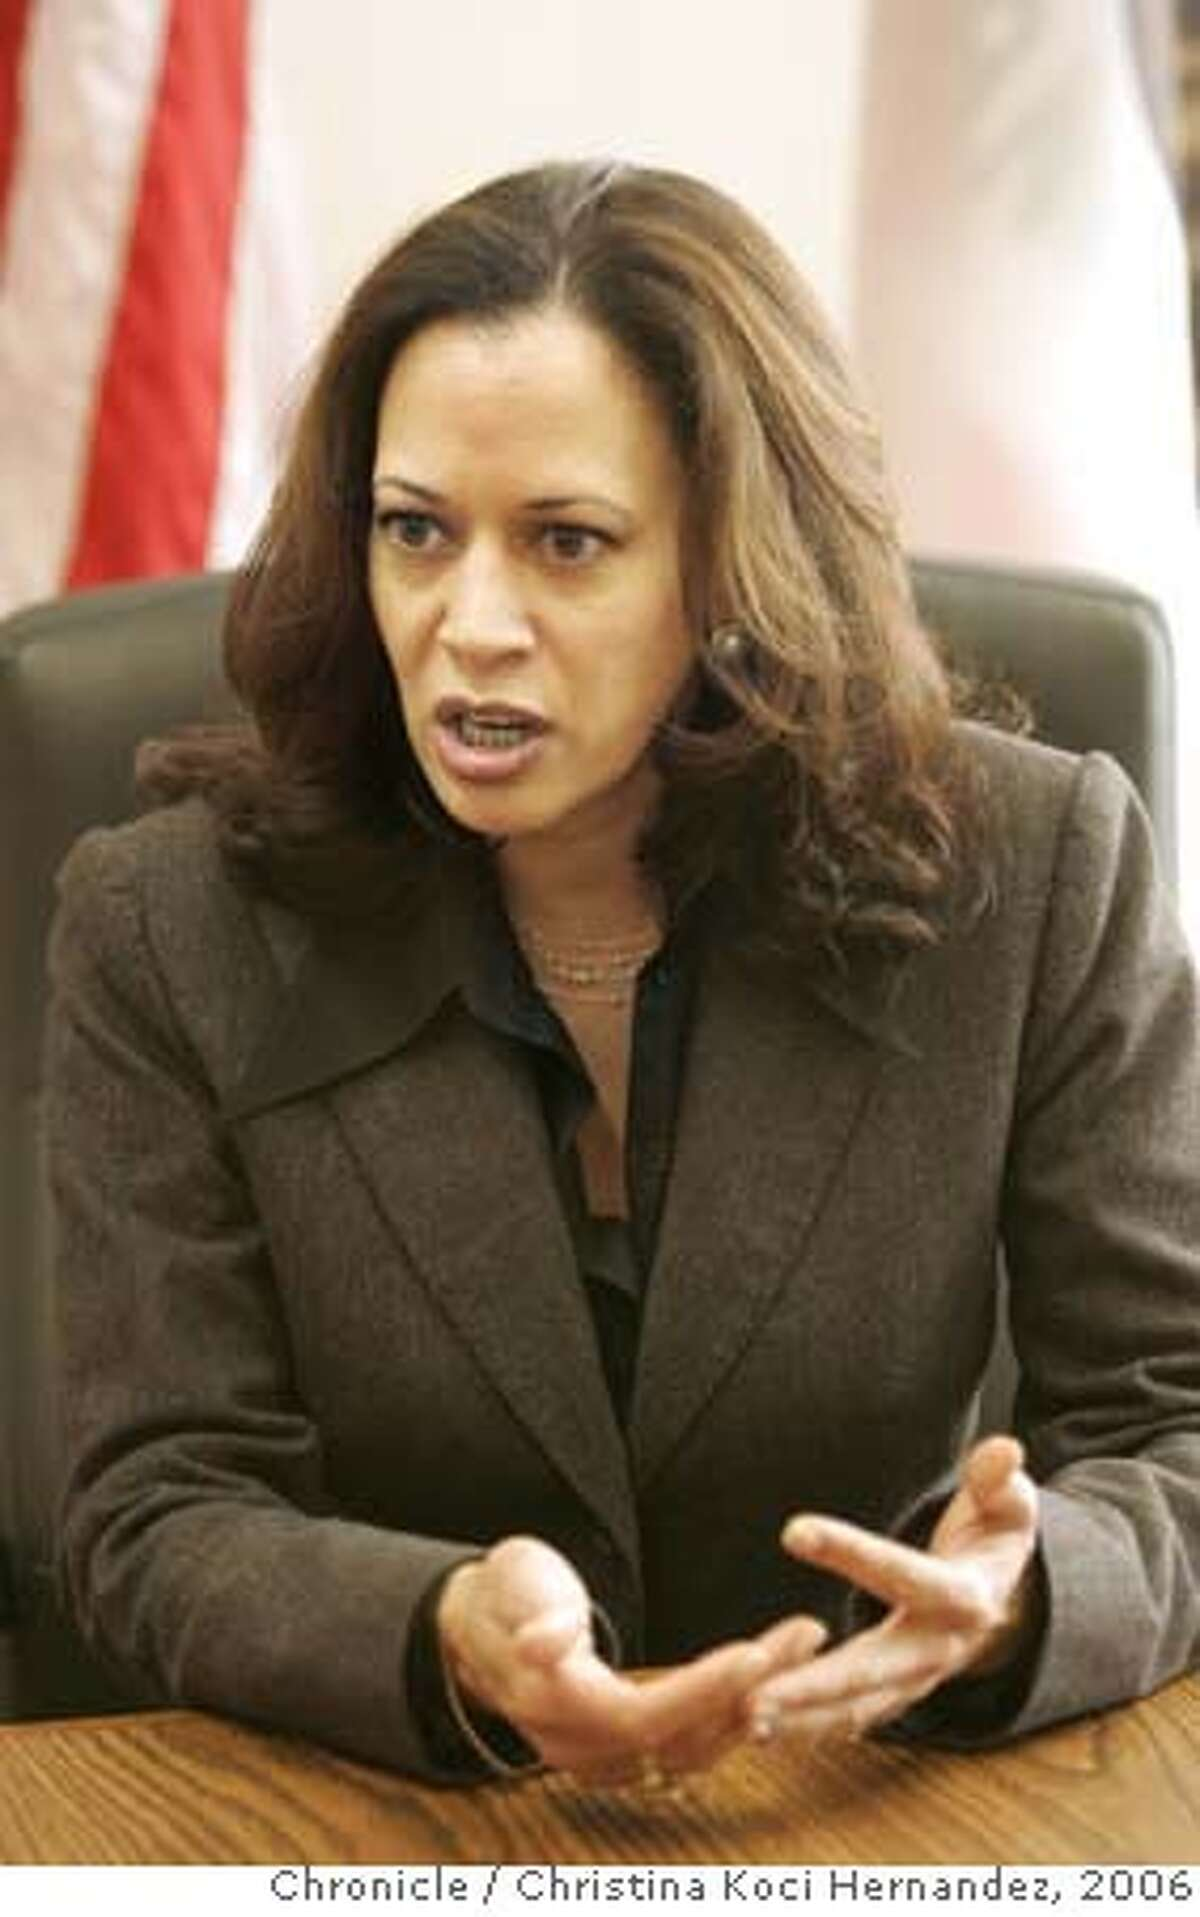 CHRISTINA KOCI HERNANDEZ/CHRONICLE We're doing a two year anniversary story on SF District Attorney Kamala Harris.Ran on: 03-20-2006 Kamala Harris is praised for professionalism, criticized for her handling of homicide cases.Ran on: 03-20-2006 Kamala Harris is praised for professionalism, criticized for her handling of homicide cases.Ran on: 03-20-2006 Ran on: 05-08-2006 District Attorney Kamala Harris has expanded the number of investigators assigned to protect witnesses after a 22-year-old man was shot to death in San Francisco. Ran on: 09-01-2006 Kamala Harris, San Franciscos district attorney, says she is working to build trust in affected communities. ALSO Ran on: 01-17-2007 Kamala Harris, San Franciscos district attorney, has not said when charges might be filed.